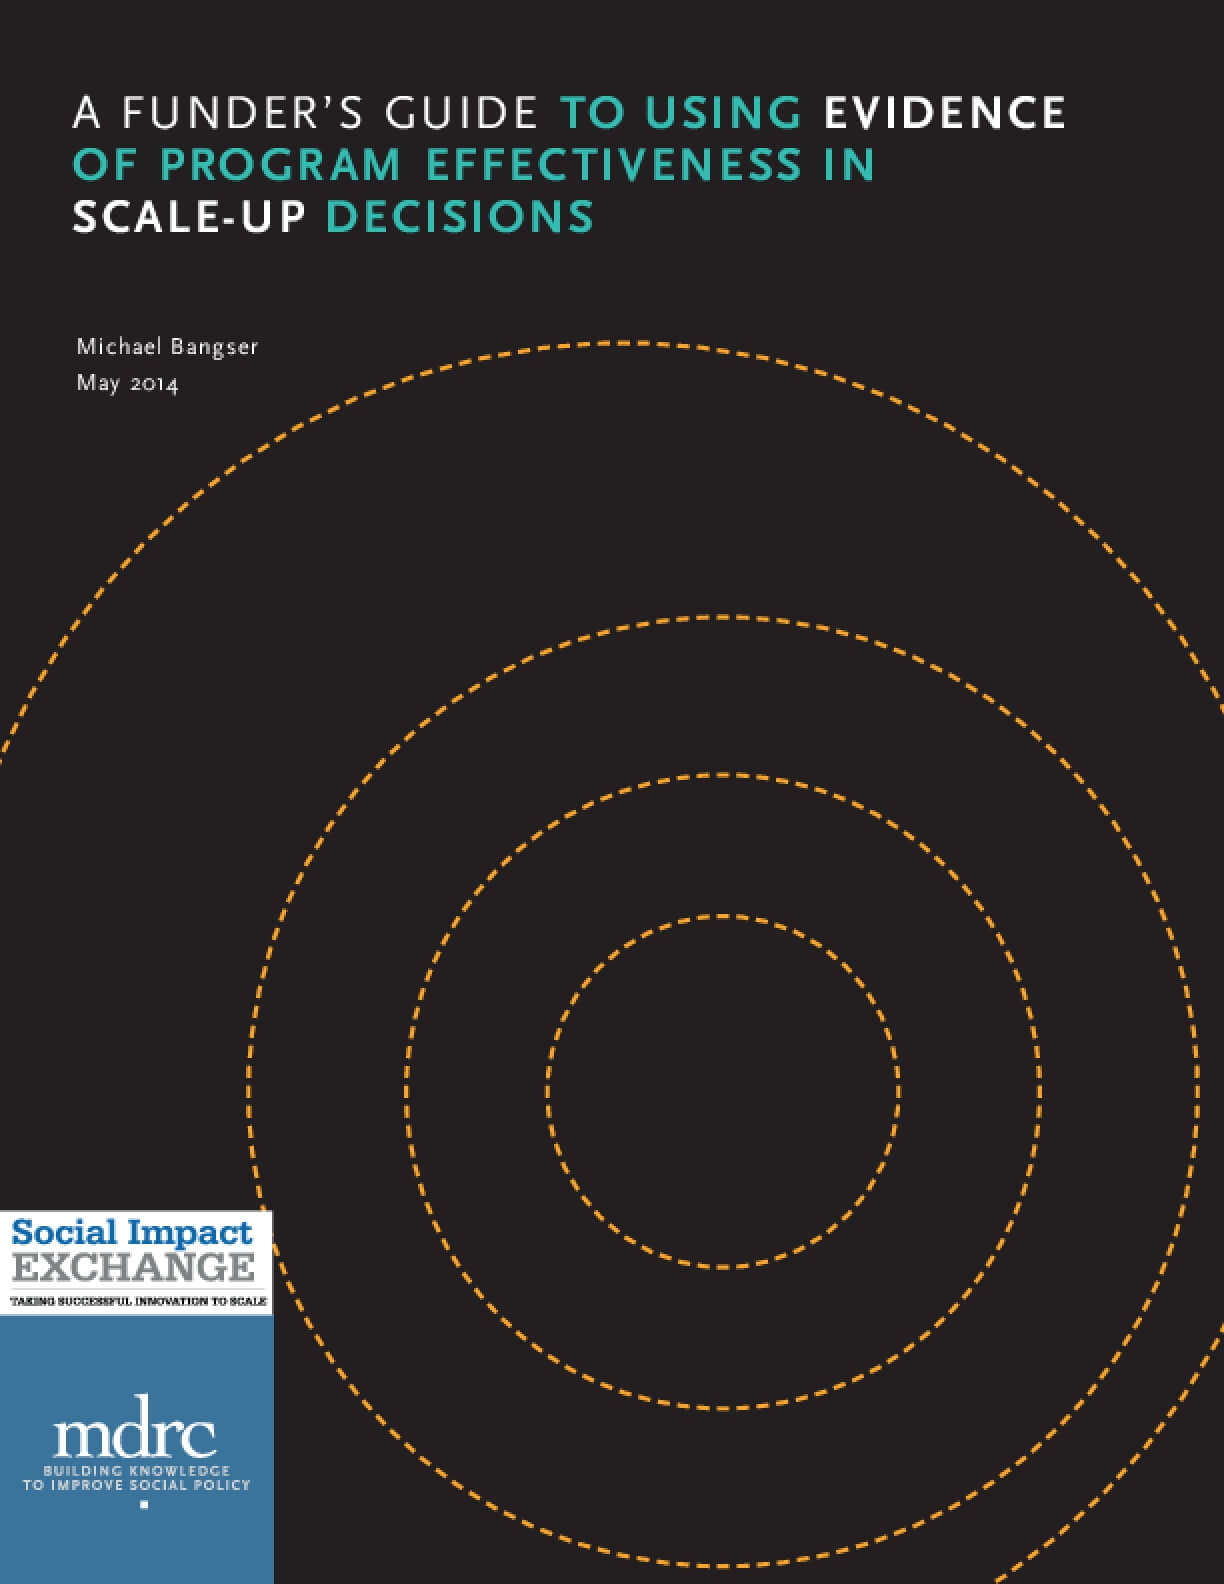 A Funder's Guide to Using Evidence of Program Effectiveness in Scale-Up Decisions